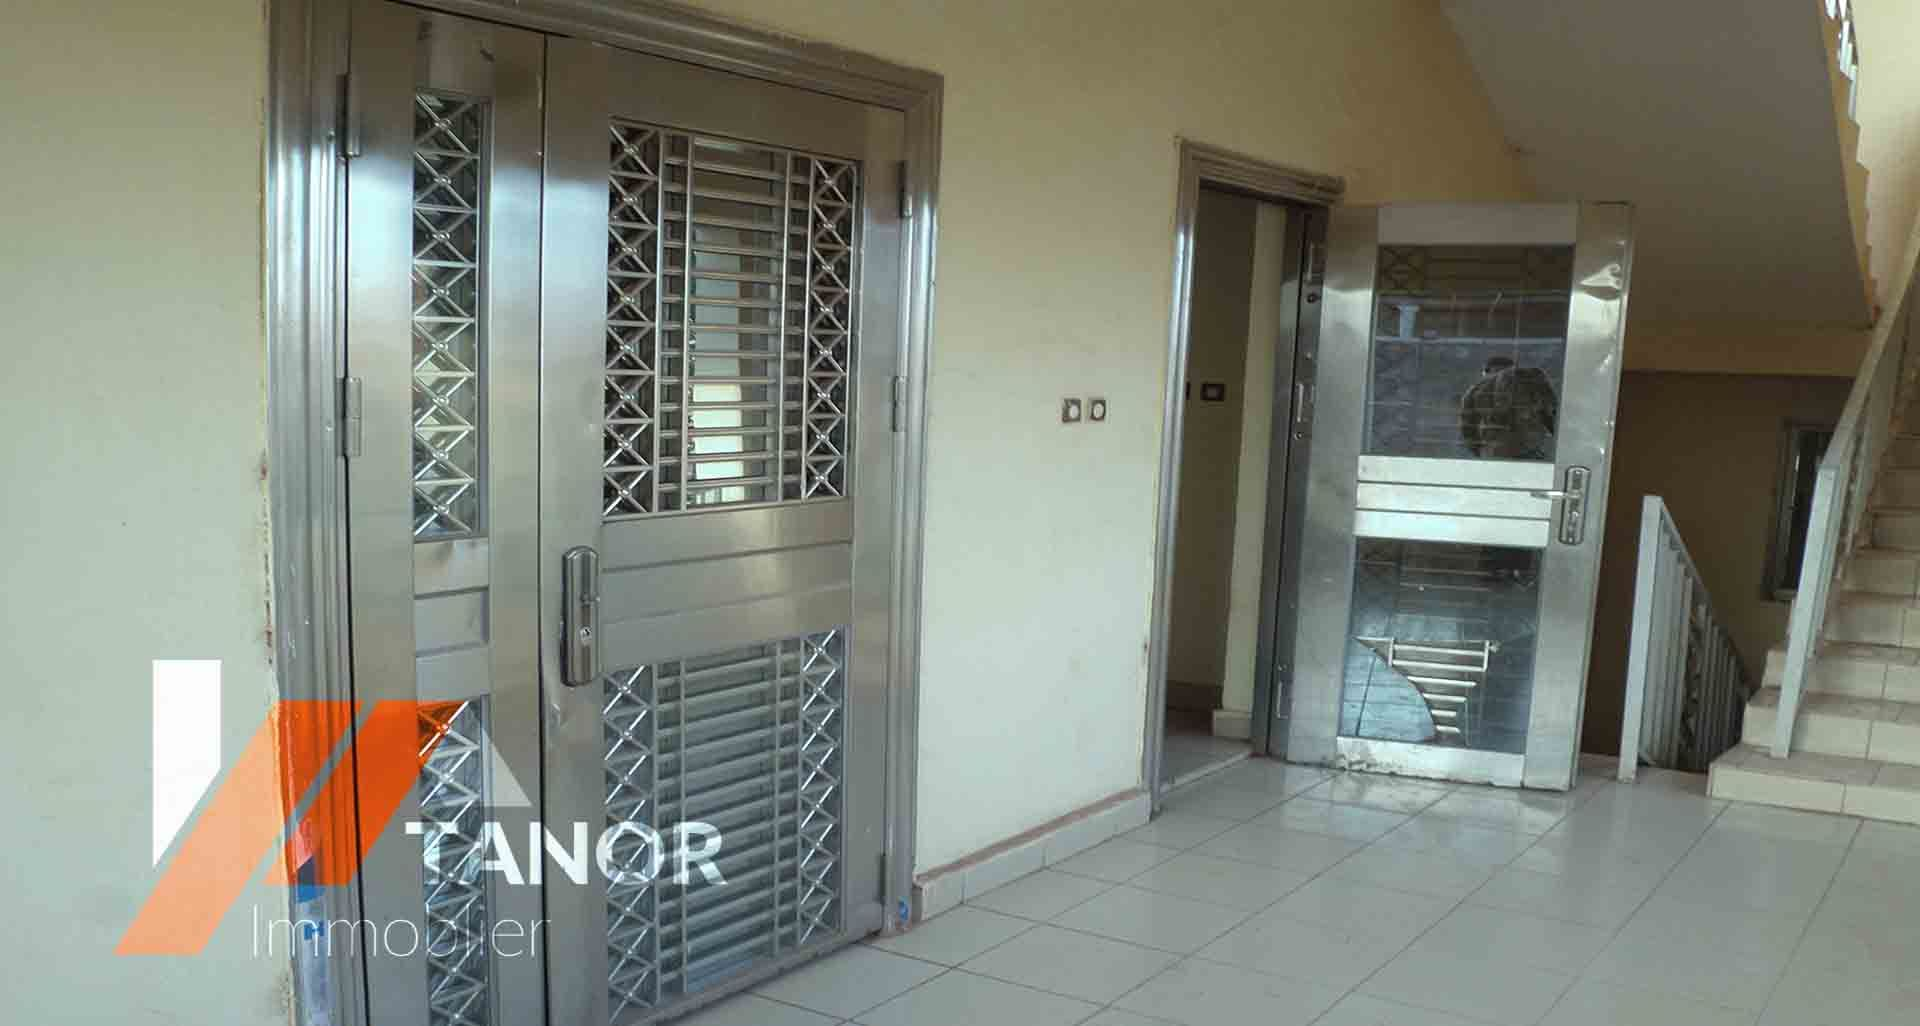 Location d 39 appartement meubl baco djicoroni golf se loger au mali - Location d appartement meuble ...